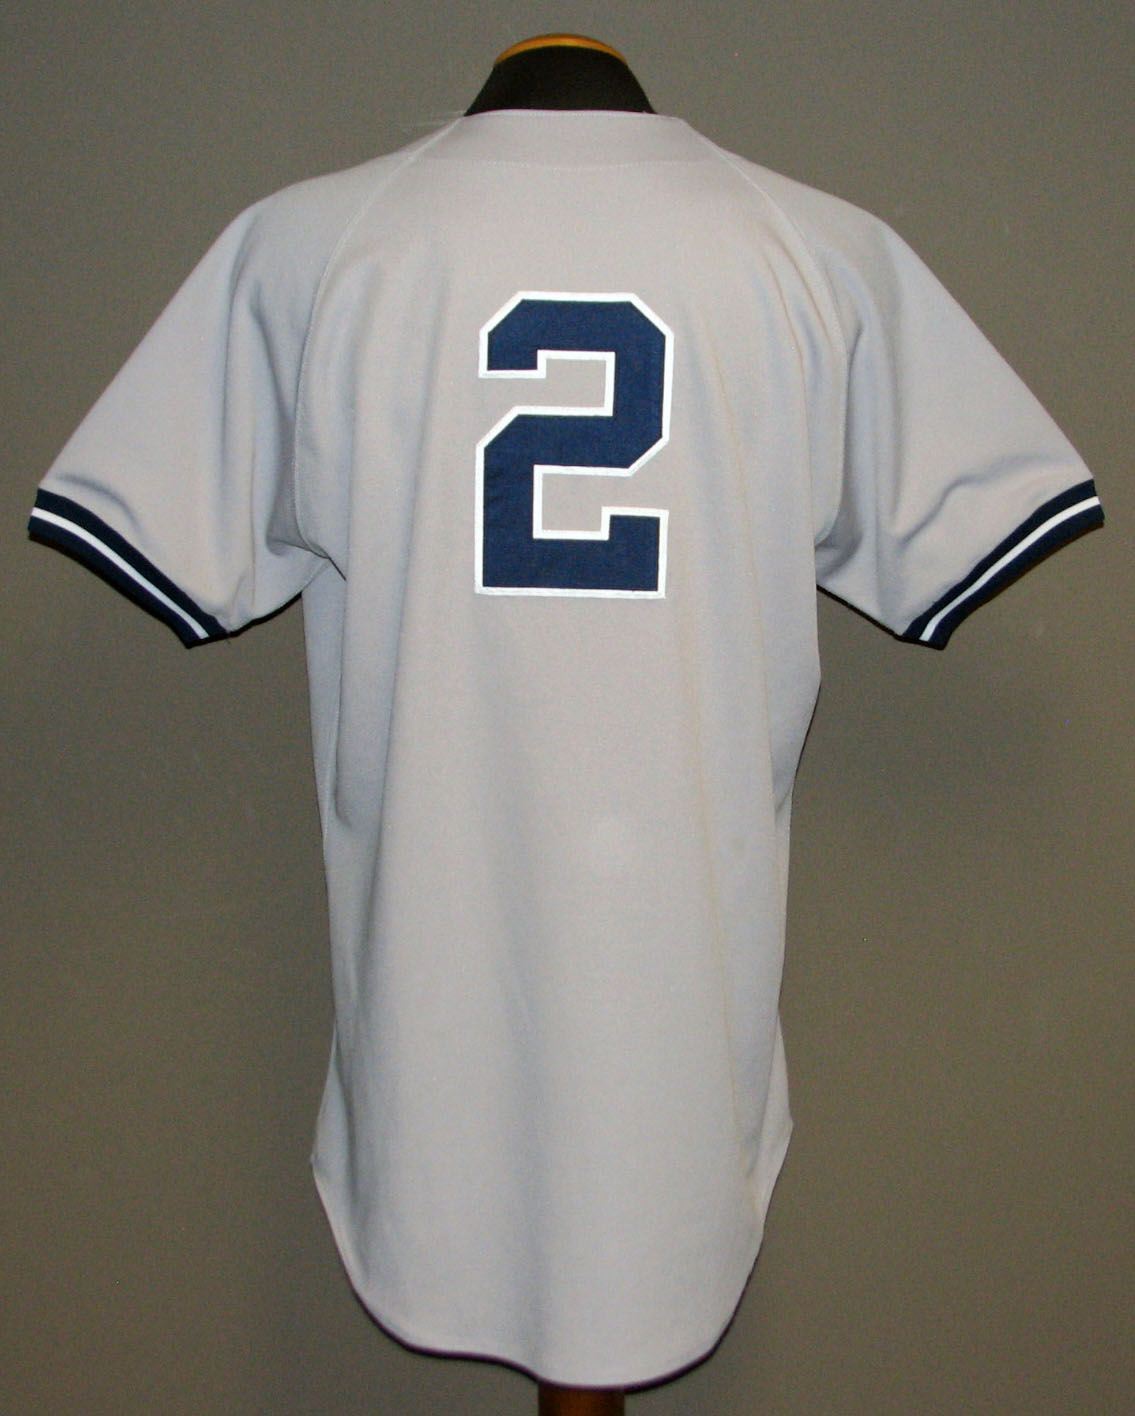 ... 1998 Derek Jeter New York Yankees Game-Used Road Jersey MEARS LOA ... ba8f577bdc5